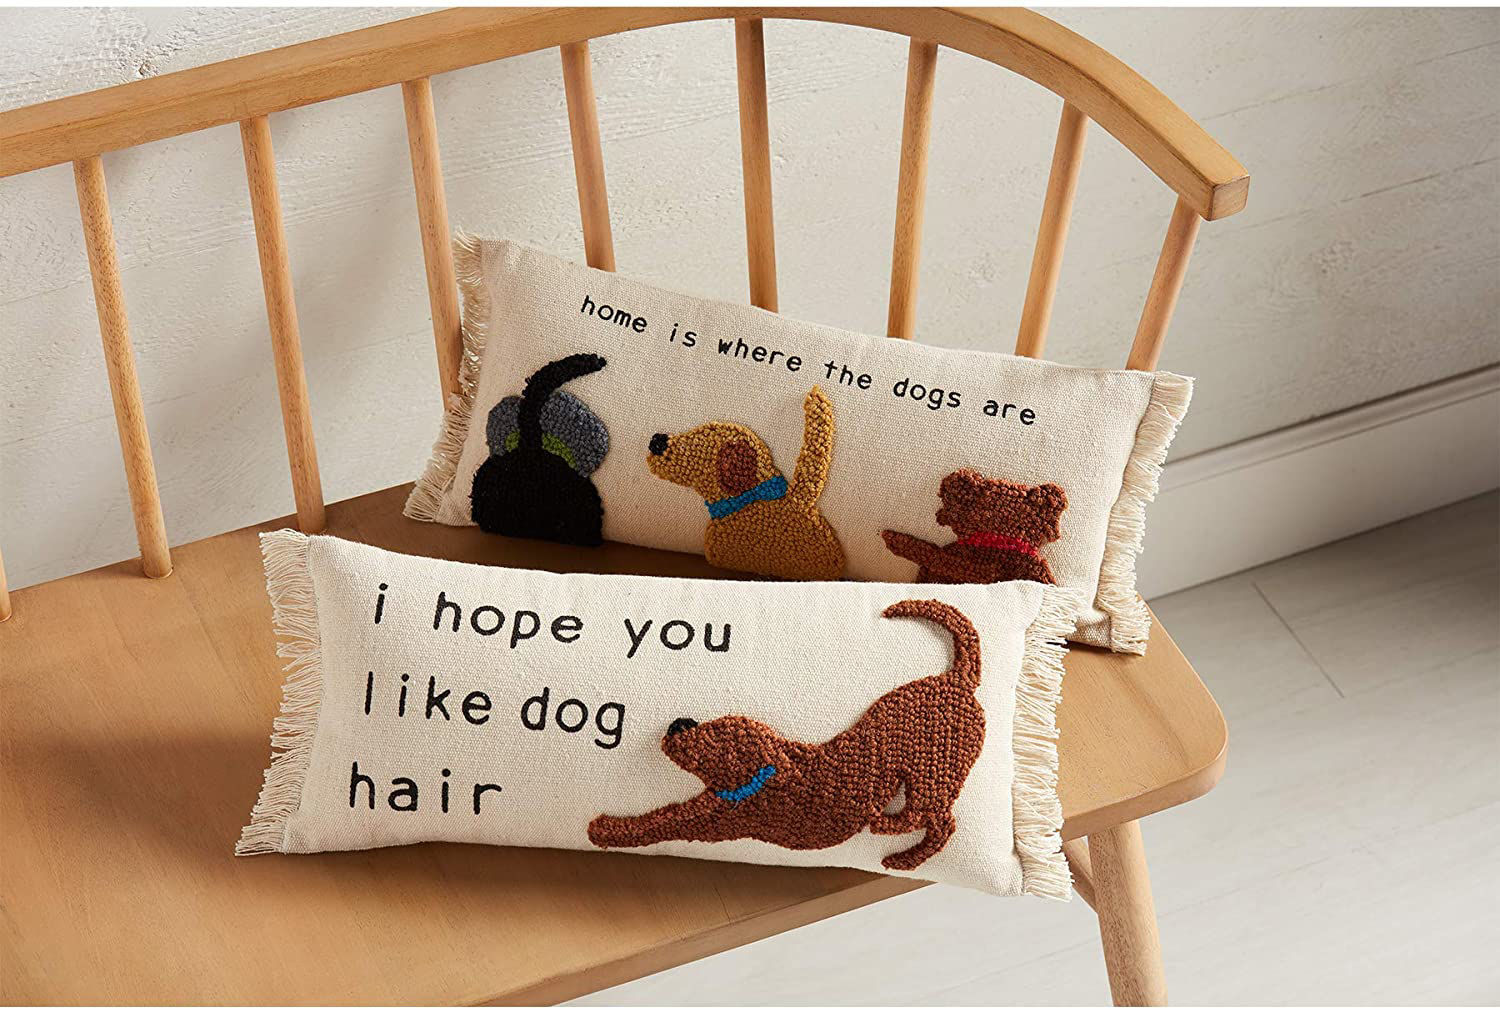 Home Is Where The Dogs Are Pillow by Mudpie